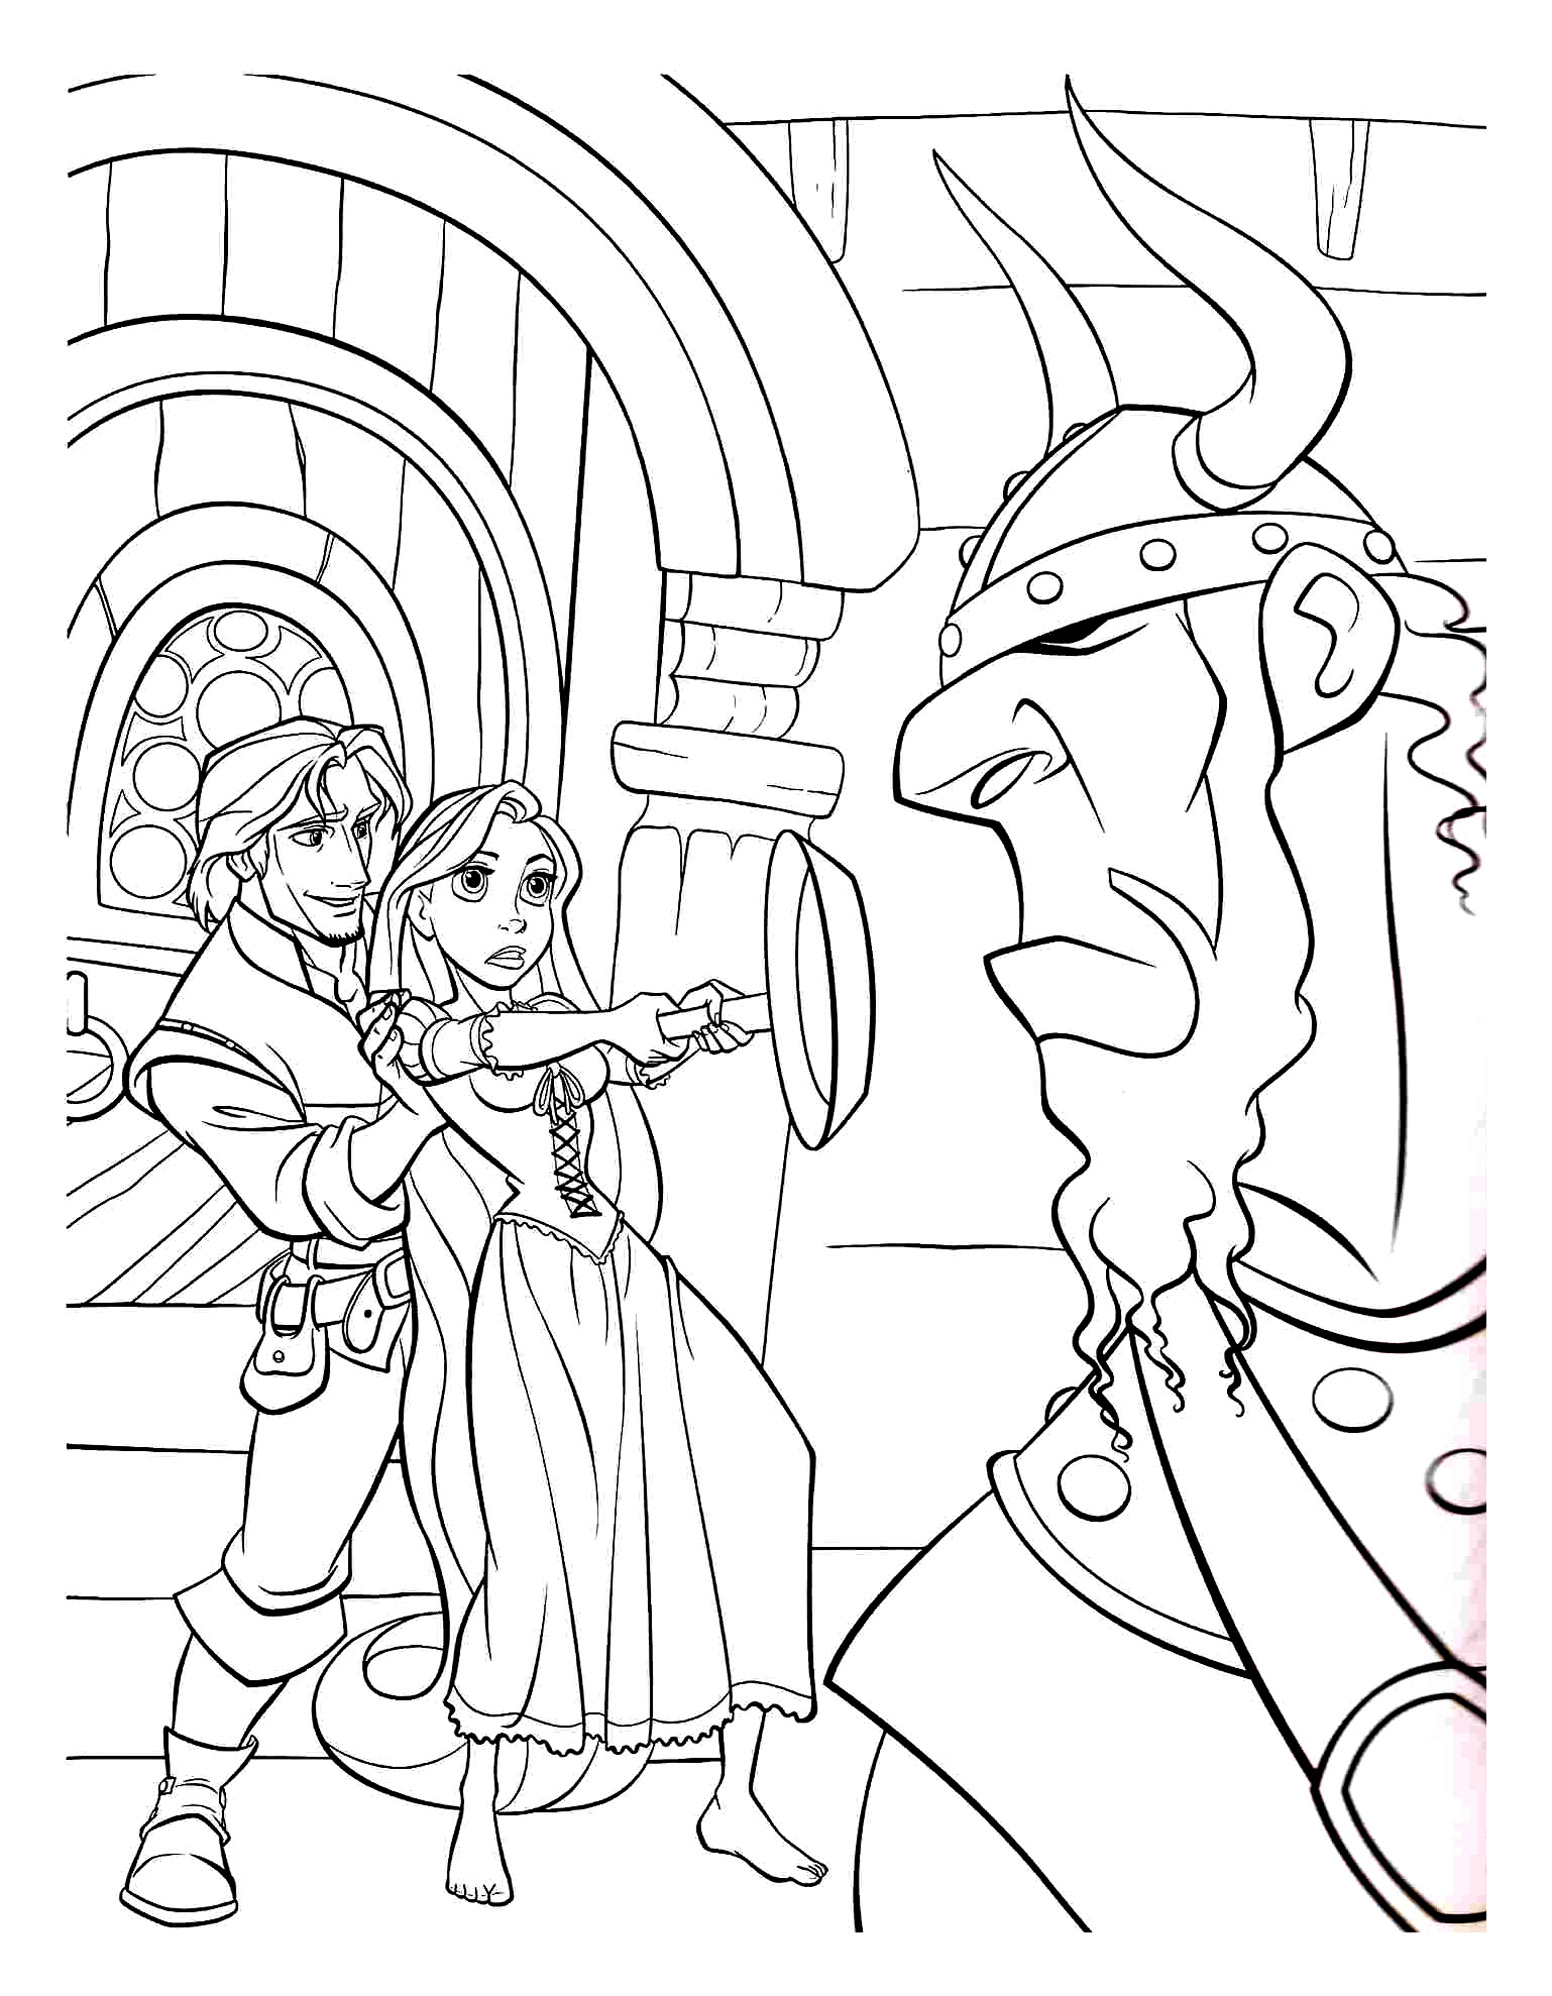 Tangled to print - Tangled Kids Coloring Pages